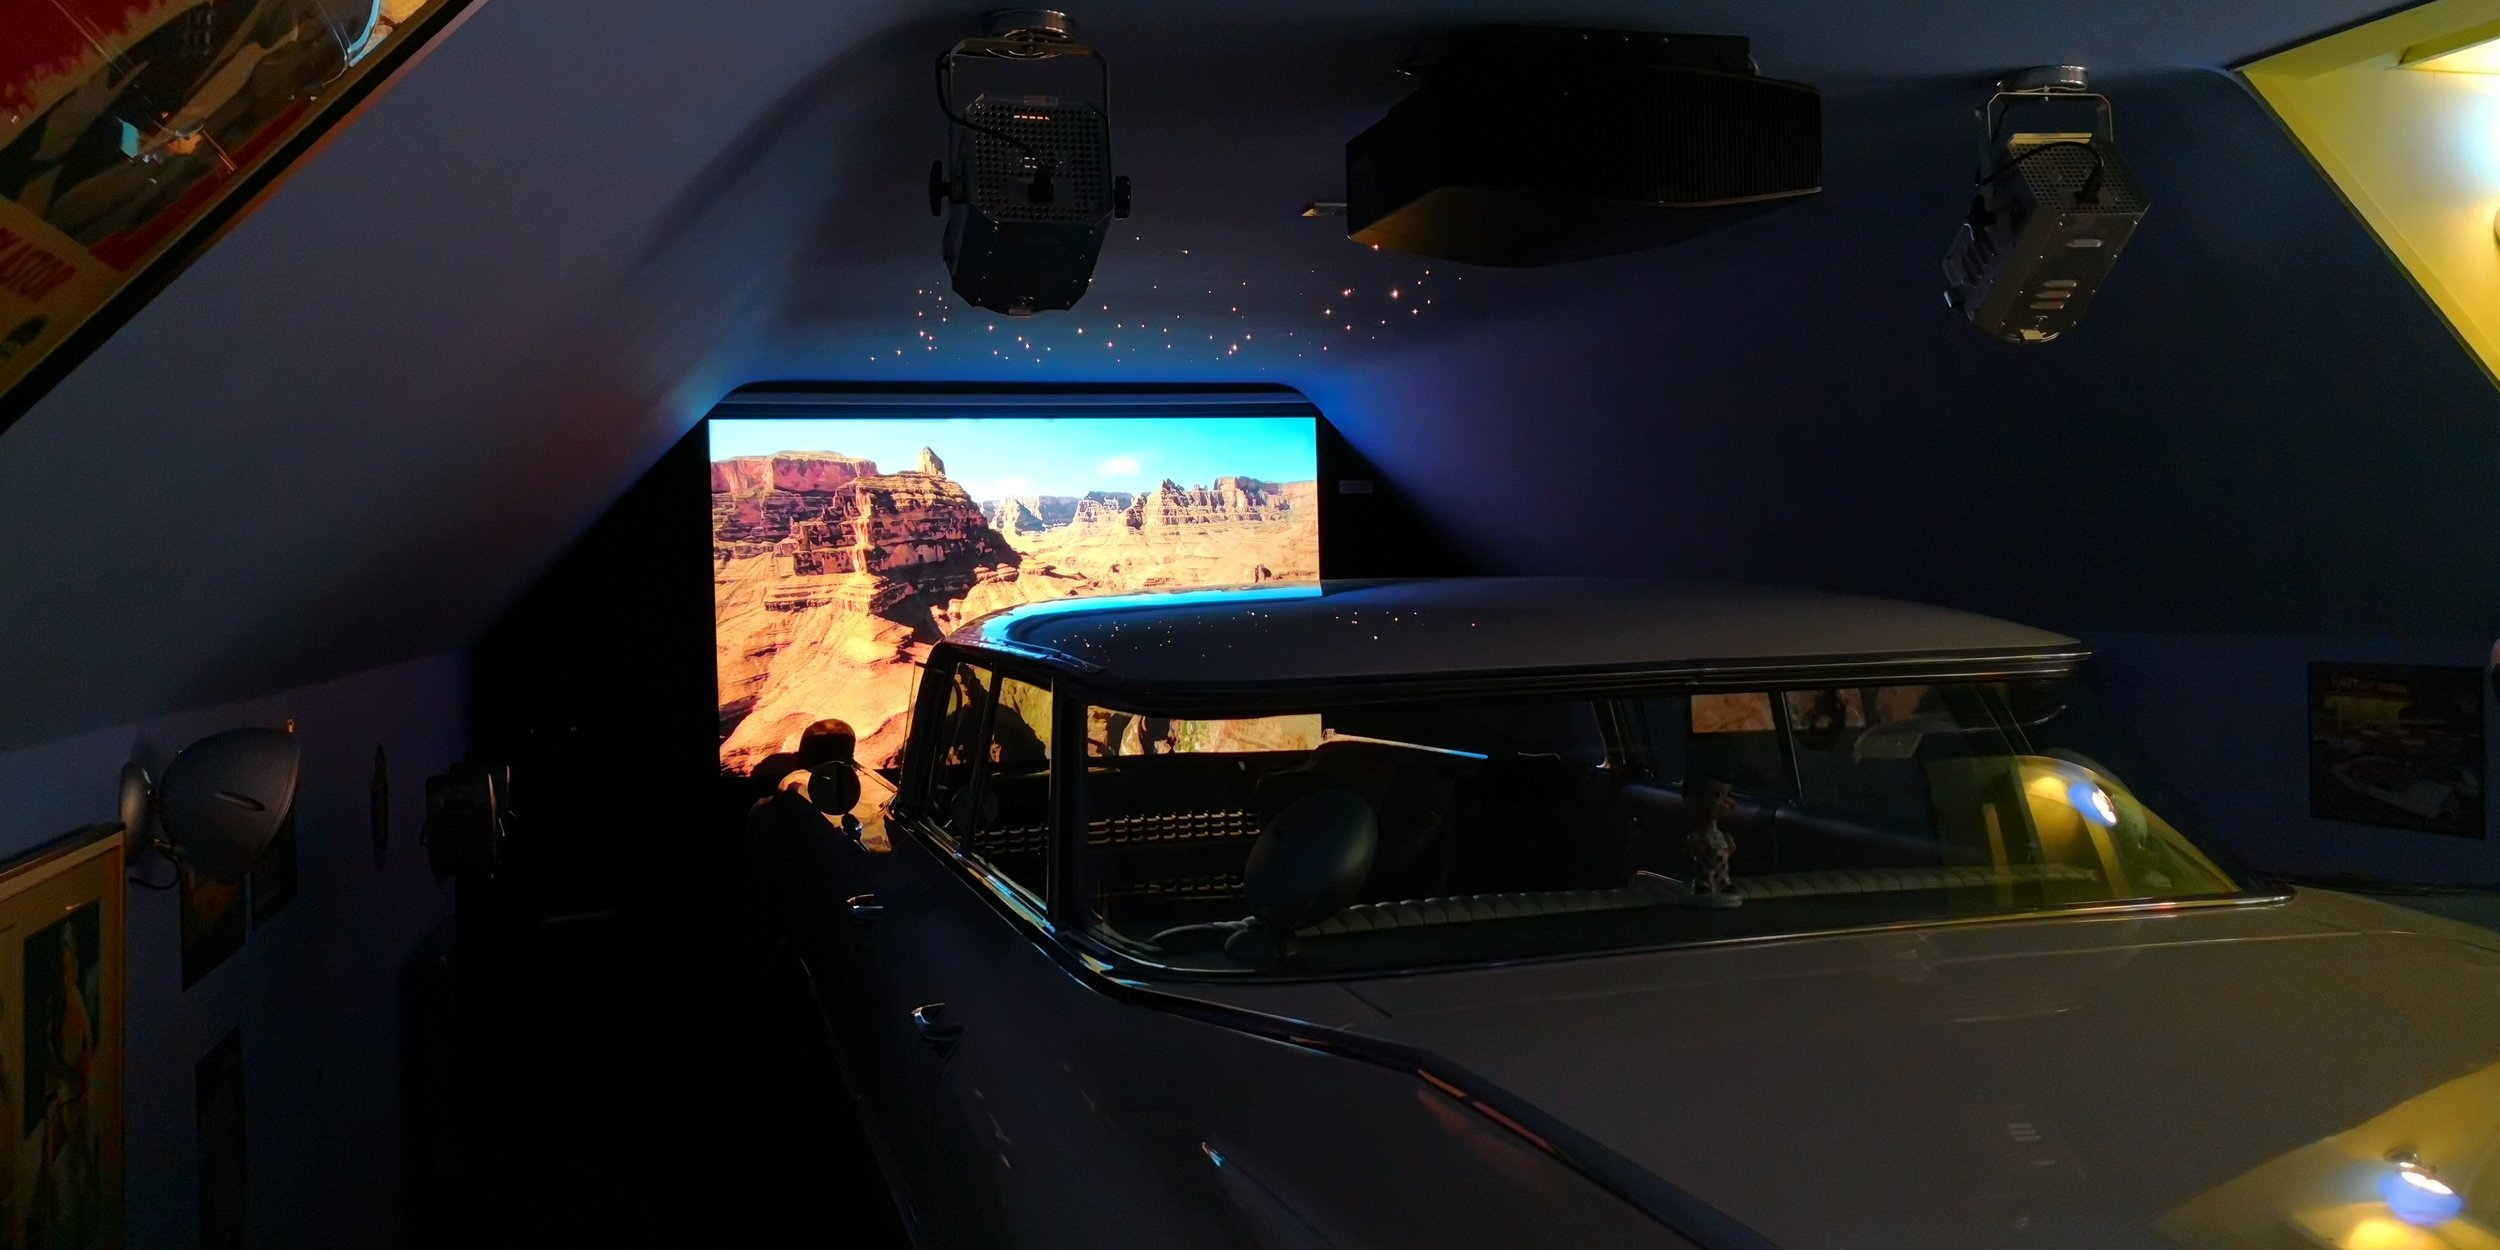 A new Sony 4K projector provides a beautiful crystal clear image.